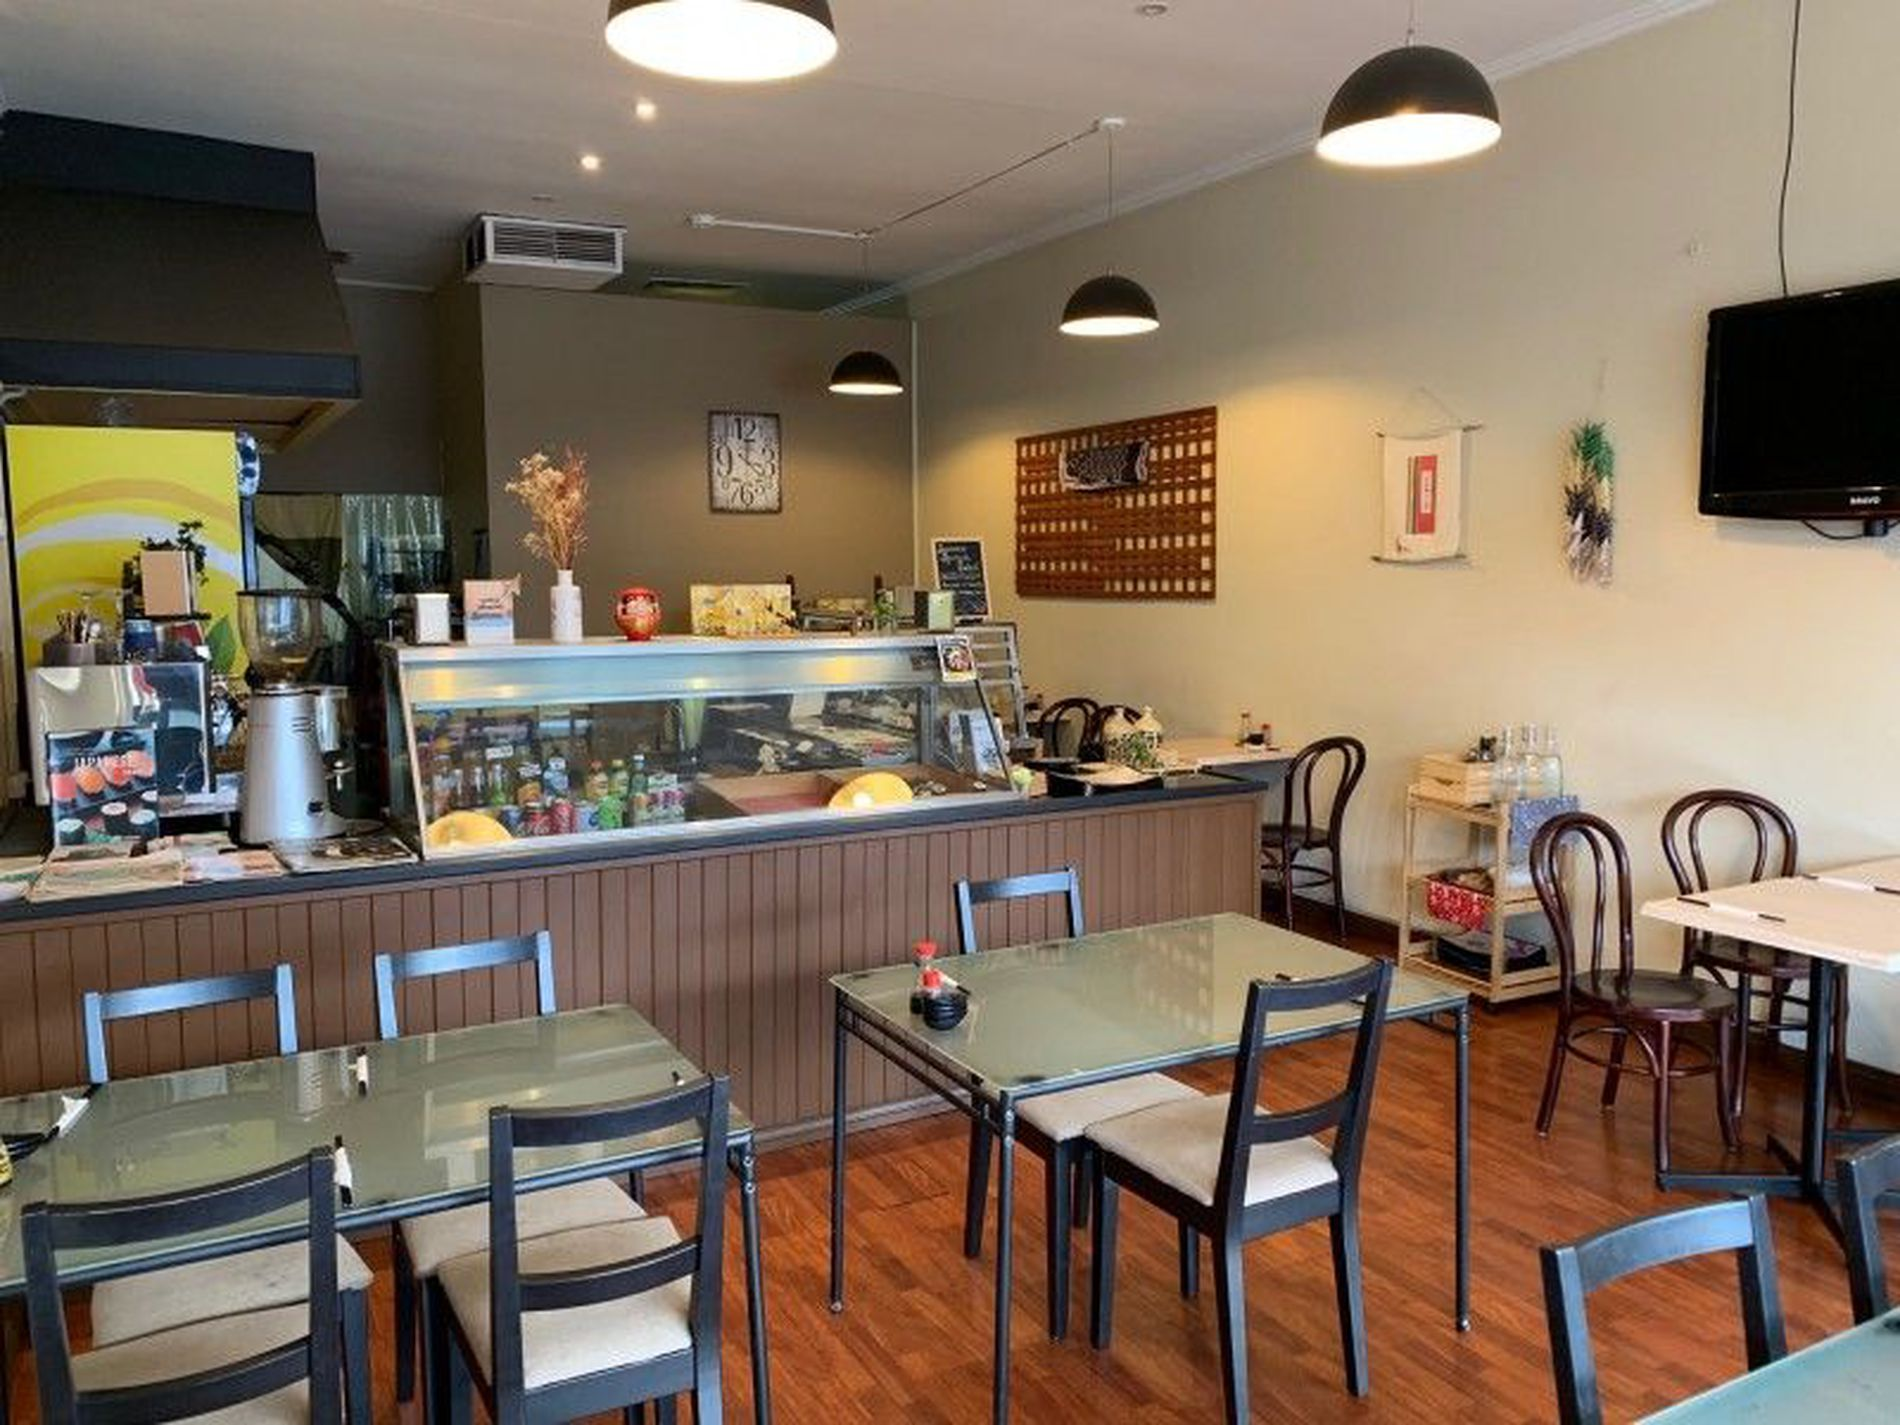 Japanese Restaurant and Takeaway Business for Sale